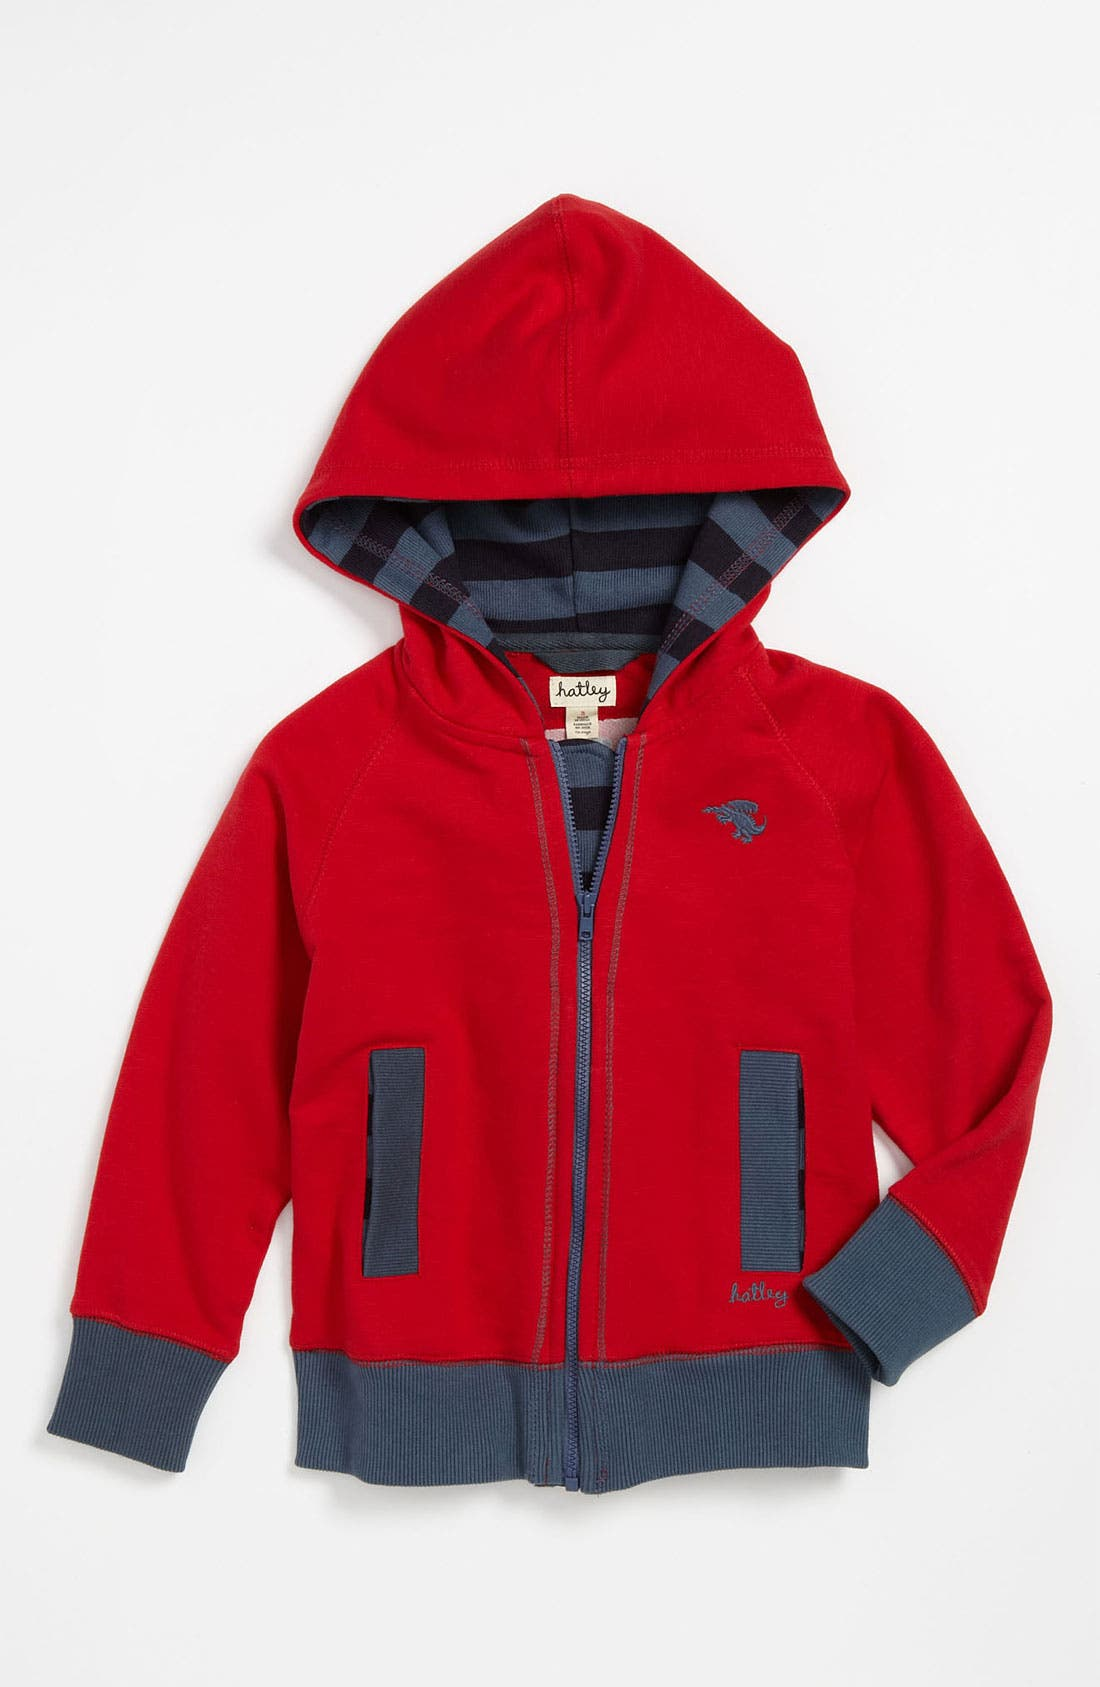 Main Image - Hatley 'Dragons' Hoodie (Toddler)